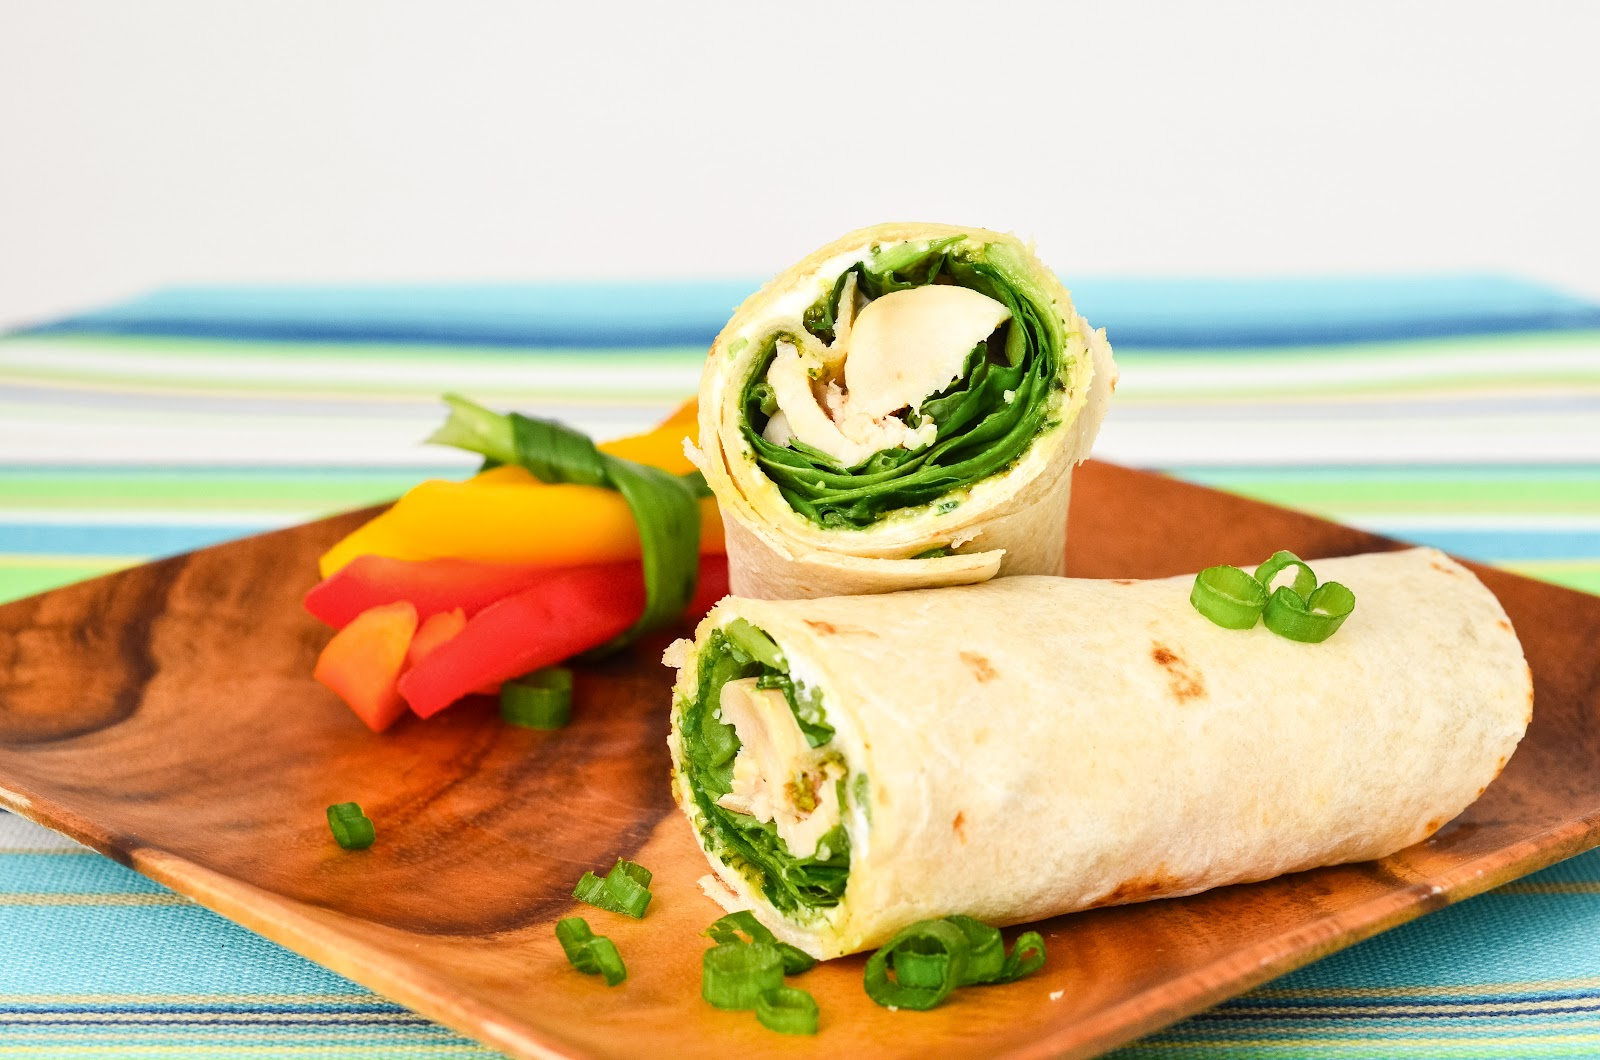 Meal Planning Made Simple: Pesto Chicken Roll-ups